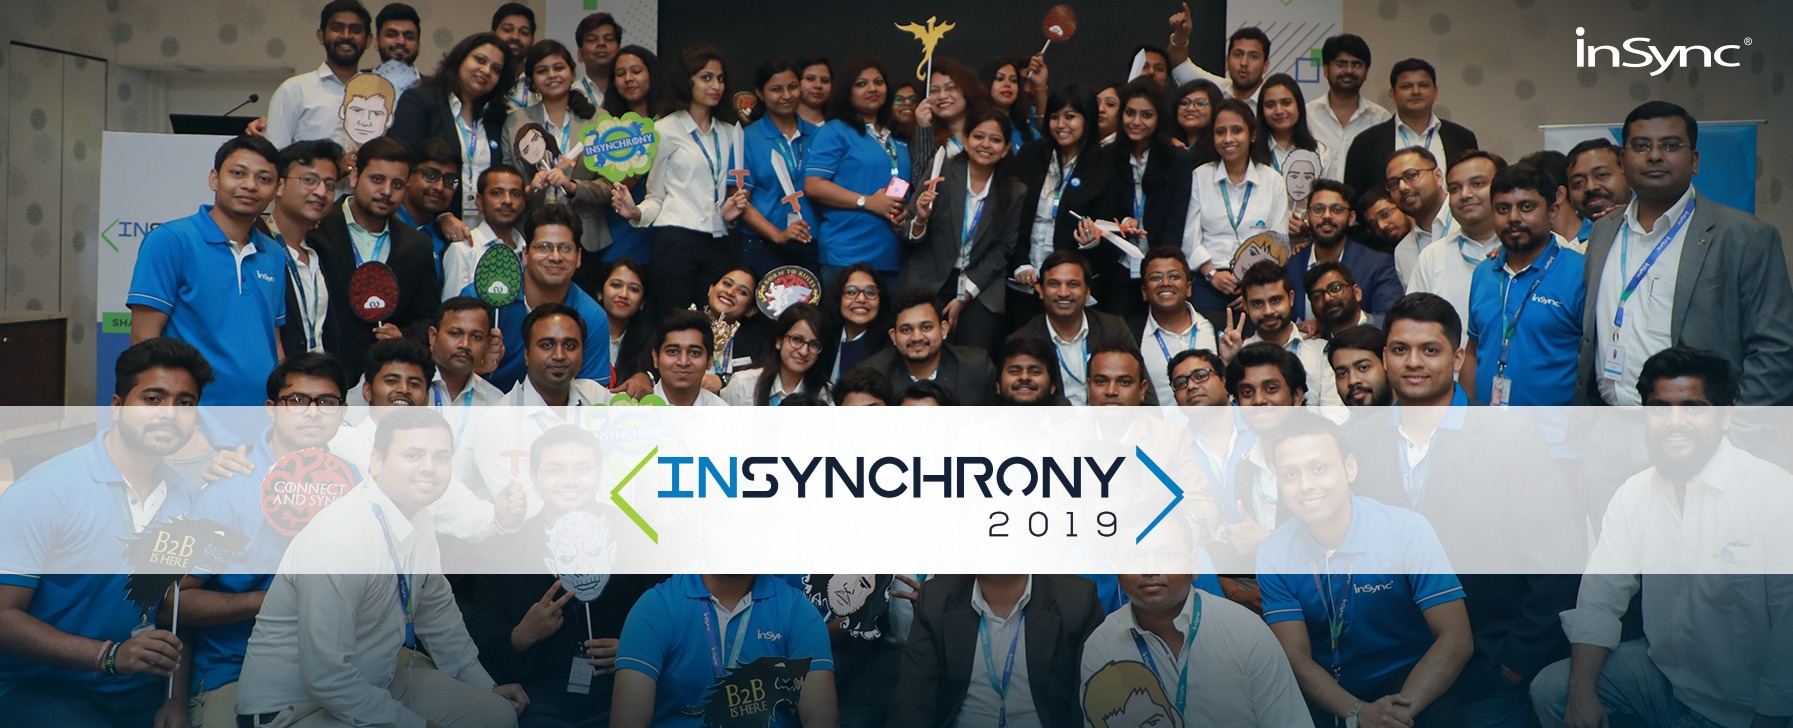 All-about-InSynchrony-2019